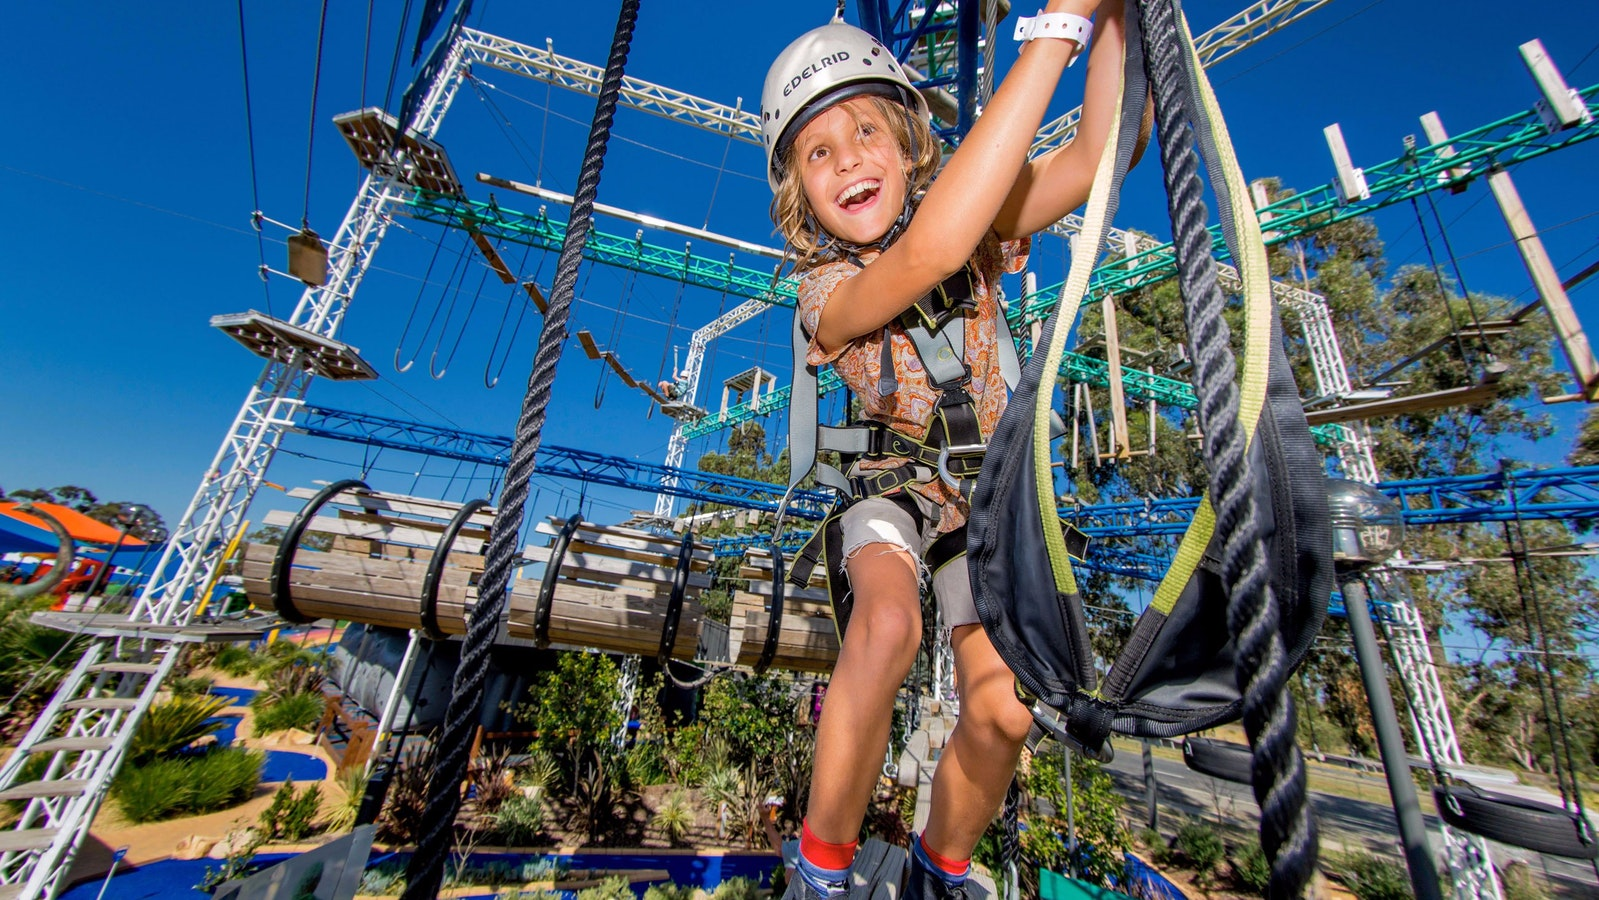 Parky's Adventure Ropes Course